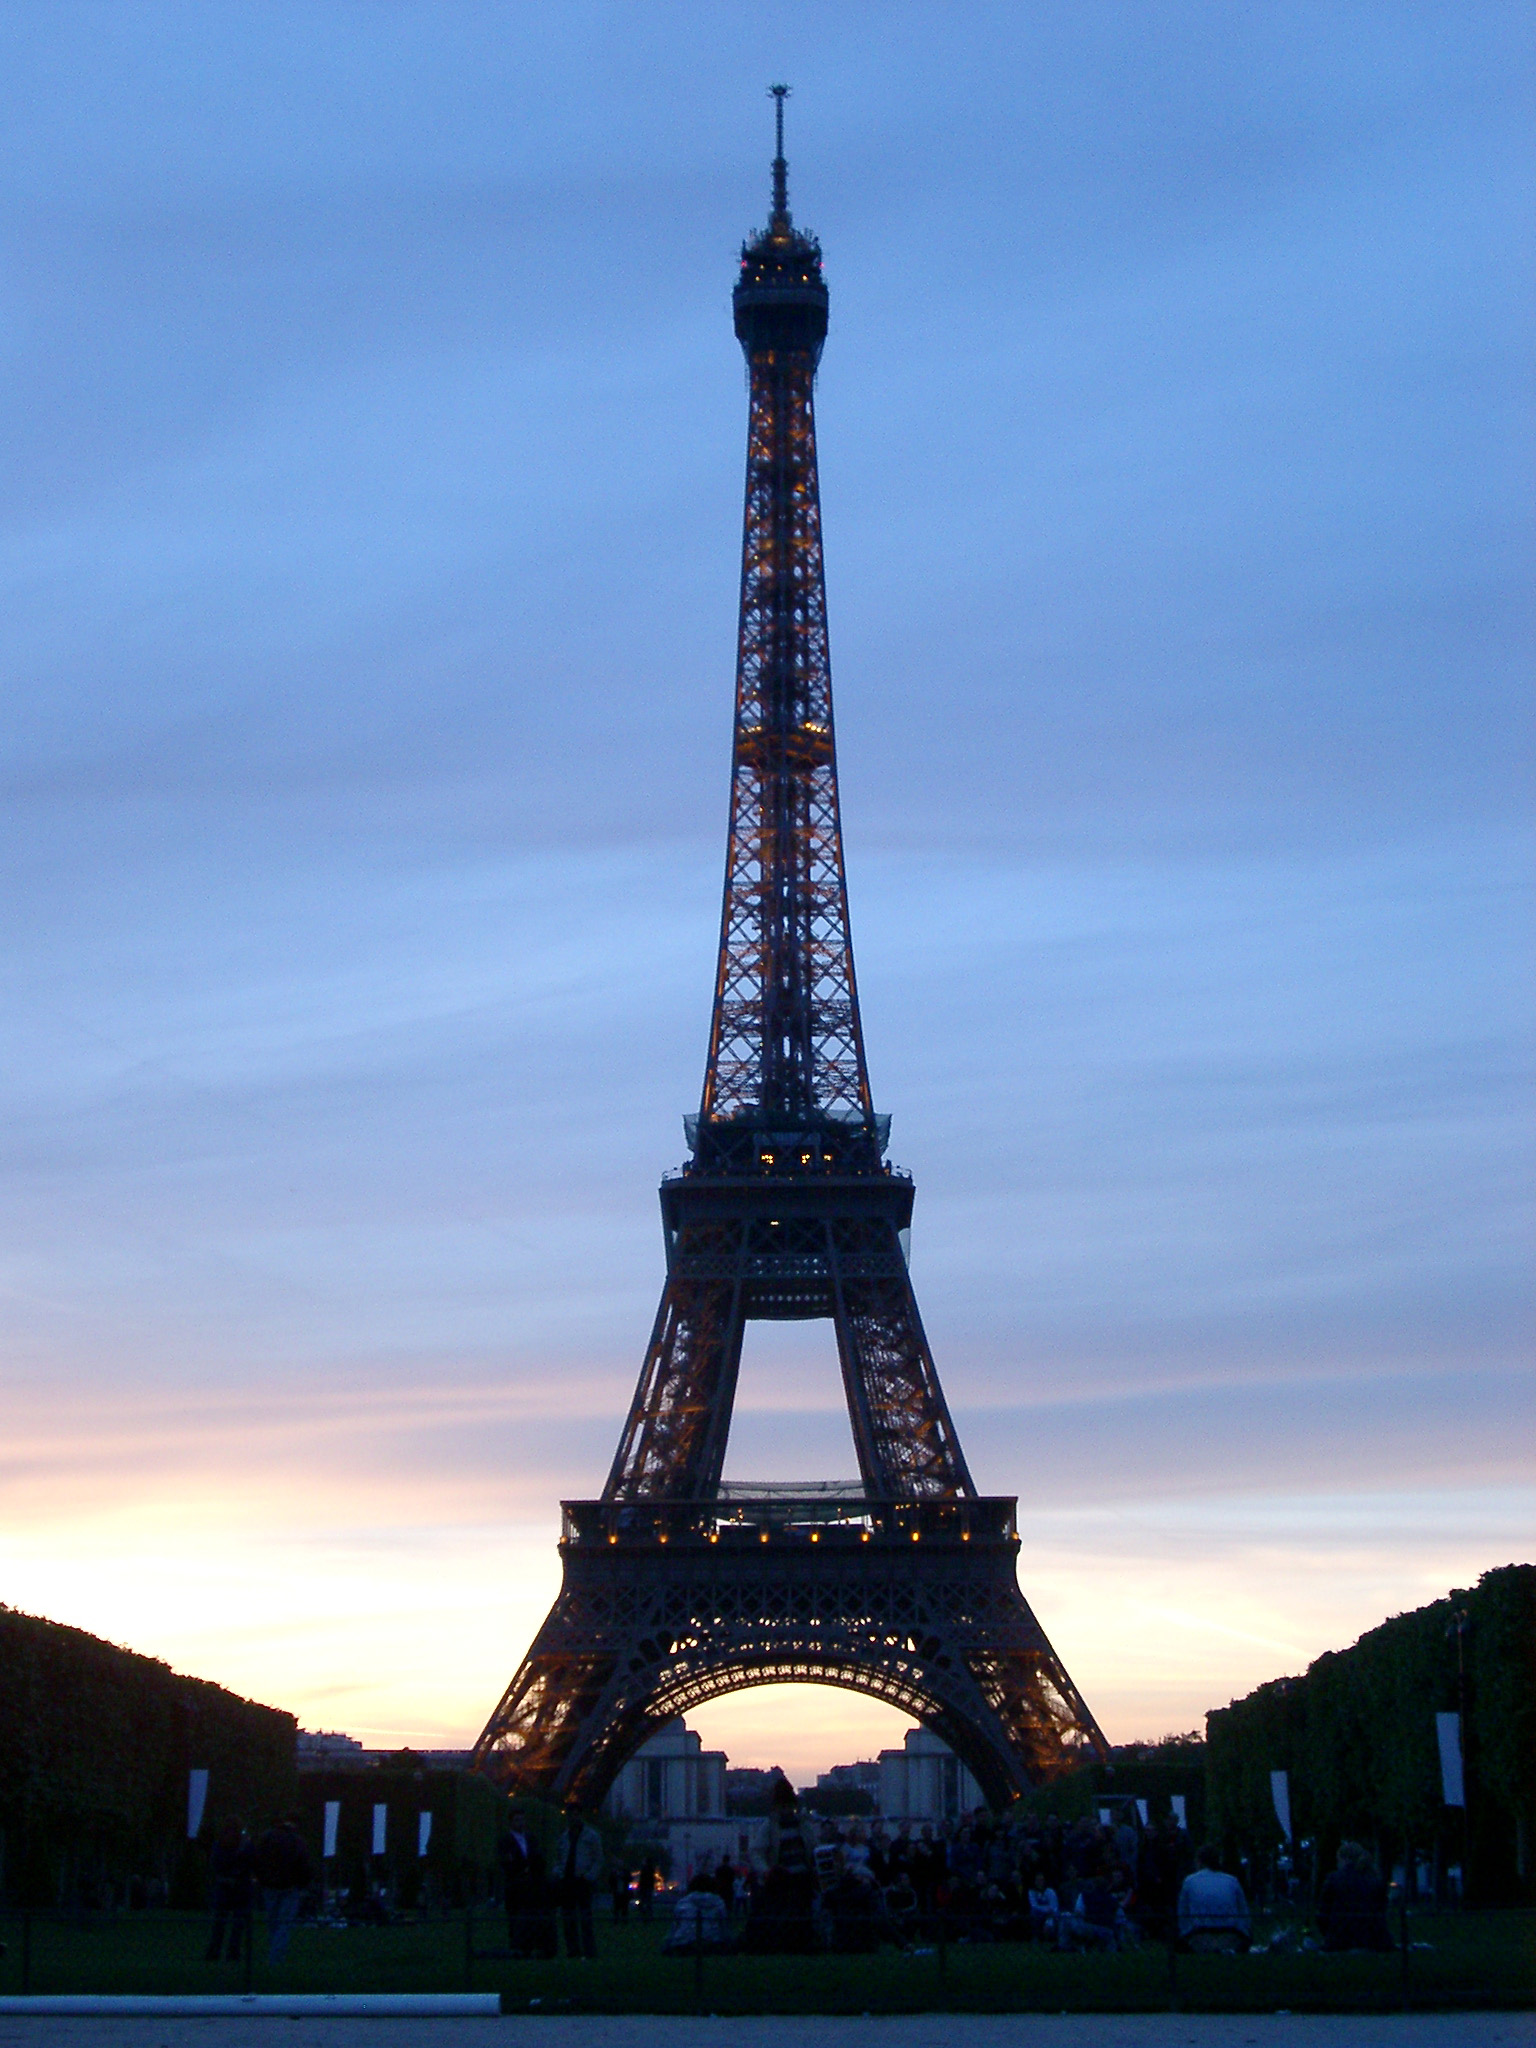 Silhouette of Eiffel Tower at Dusk or Dawn with Cloudy Sky, Paris, France